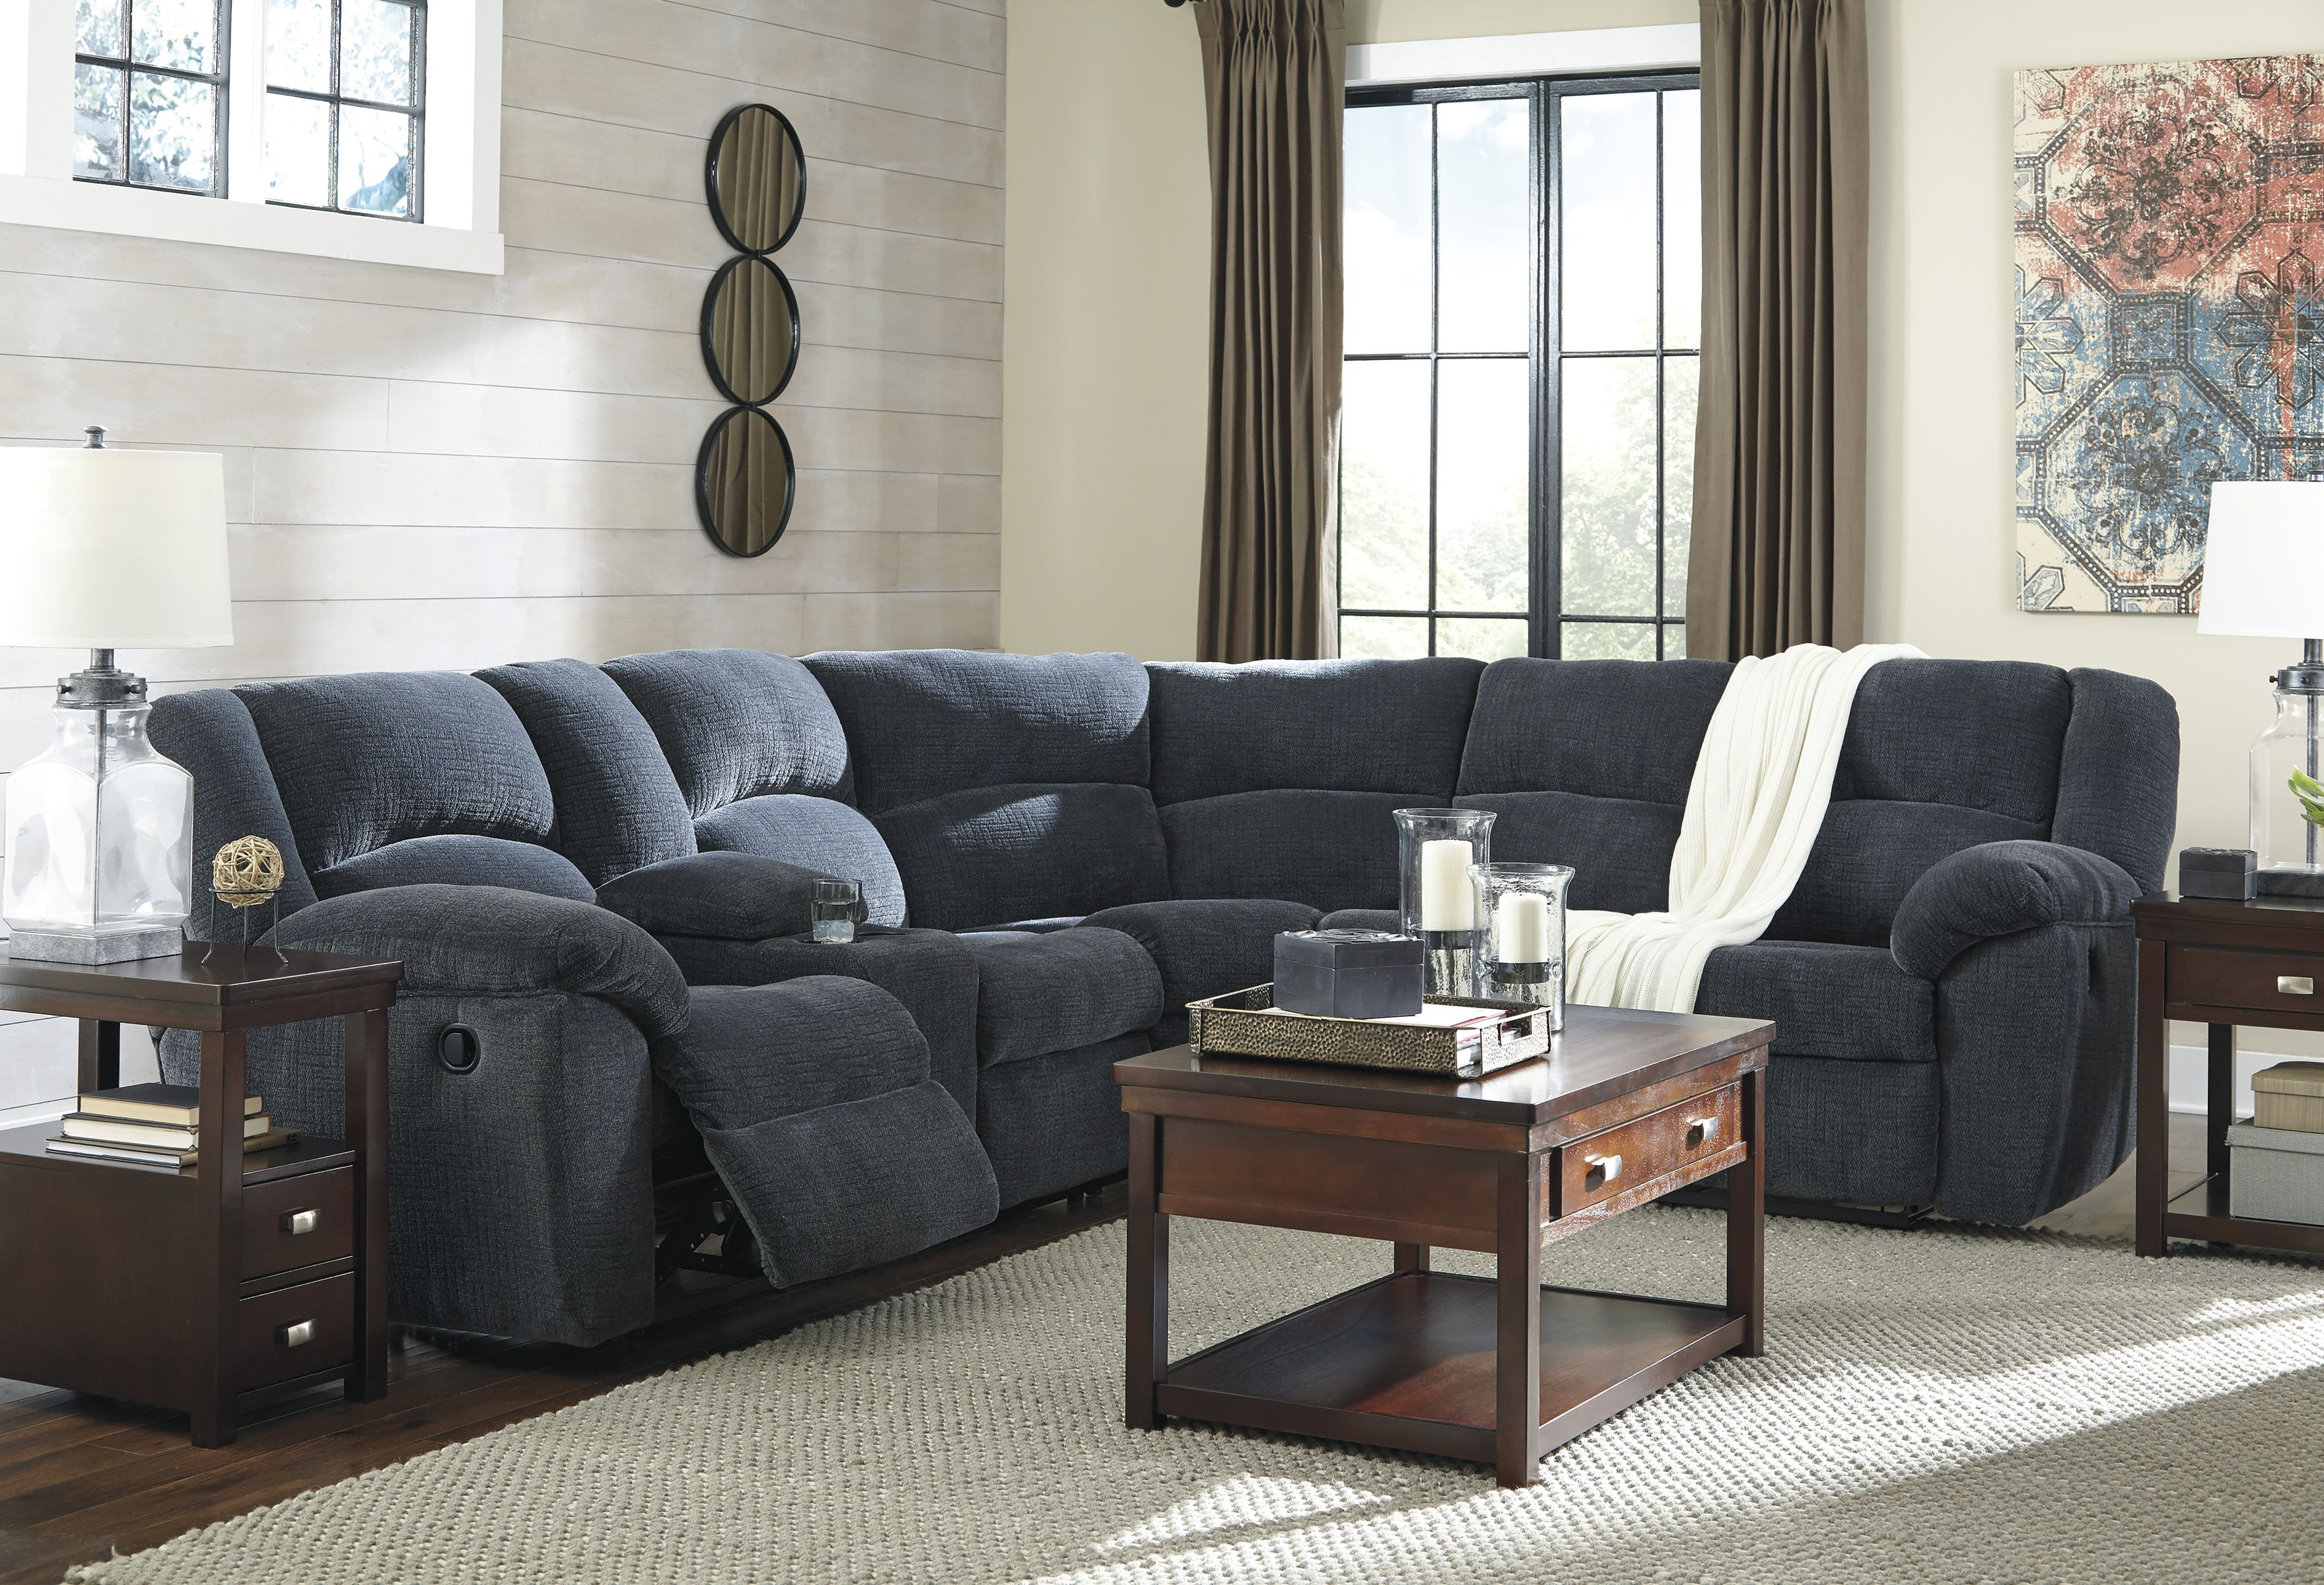 Our Seven Seas Sectional Has 2 Recliners And A Console With